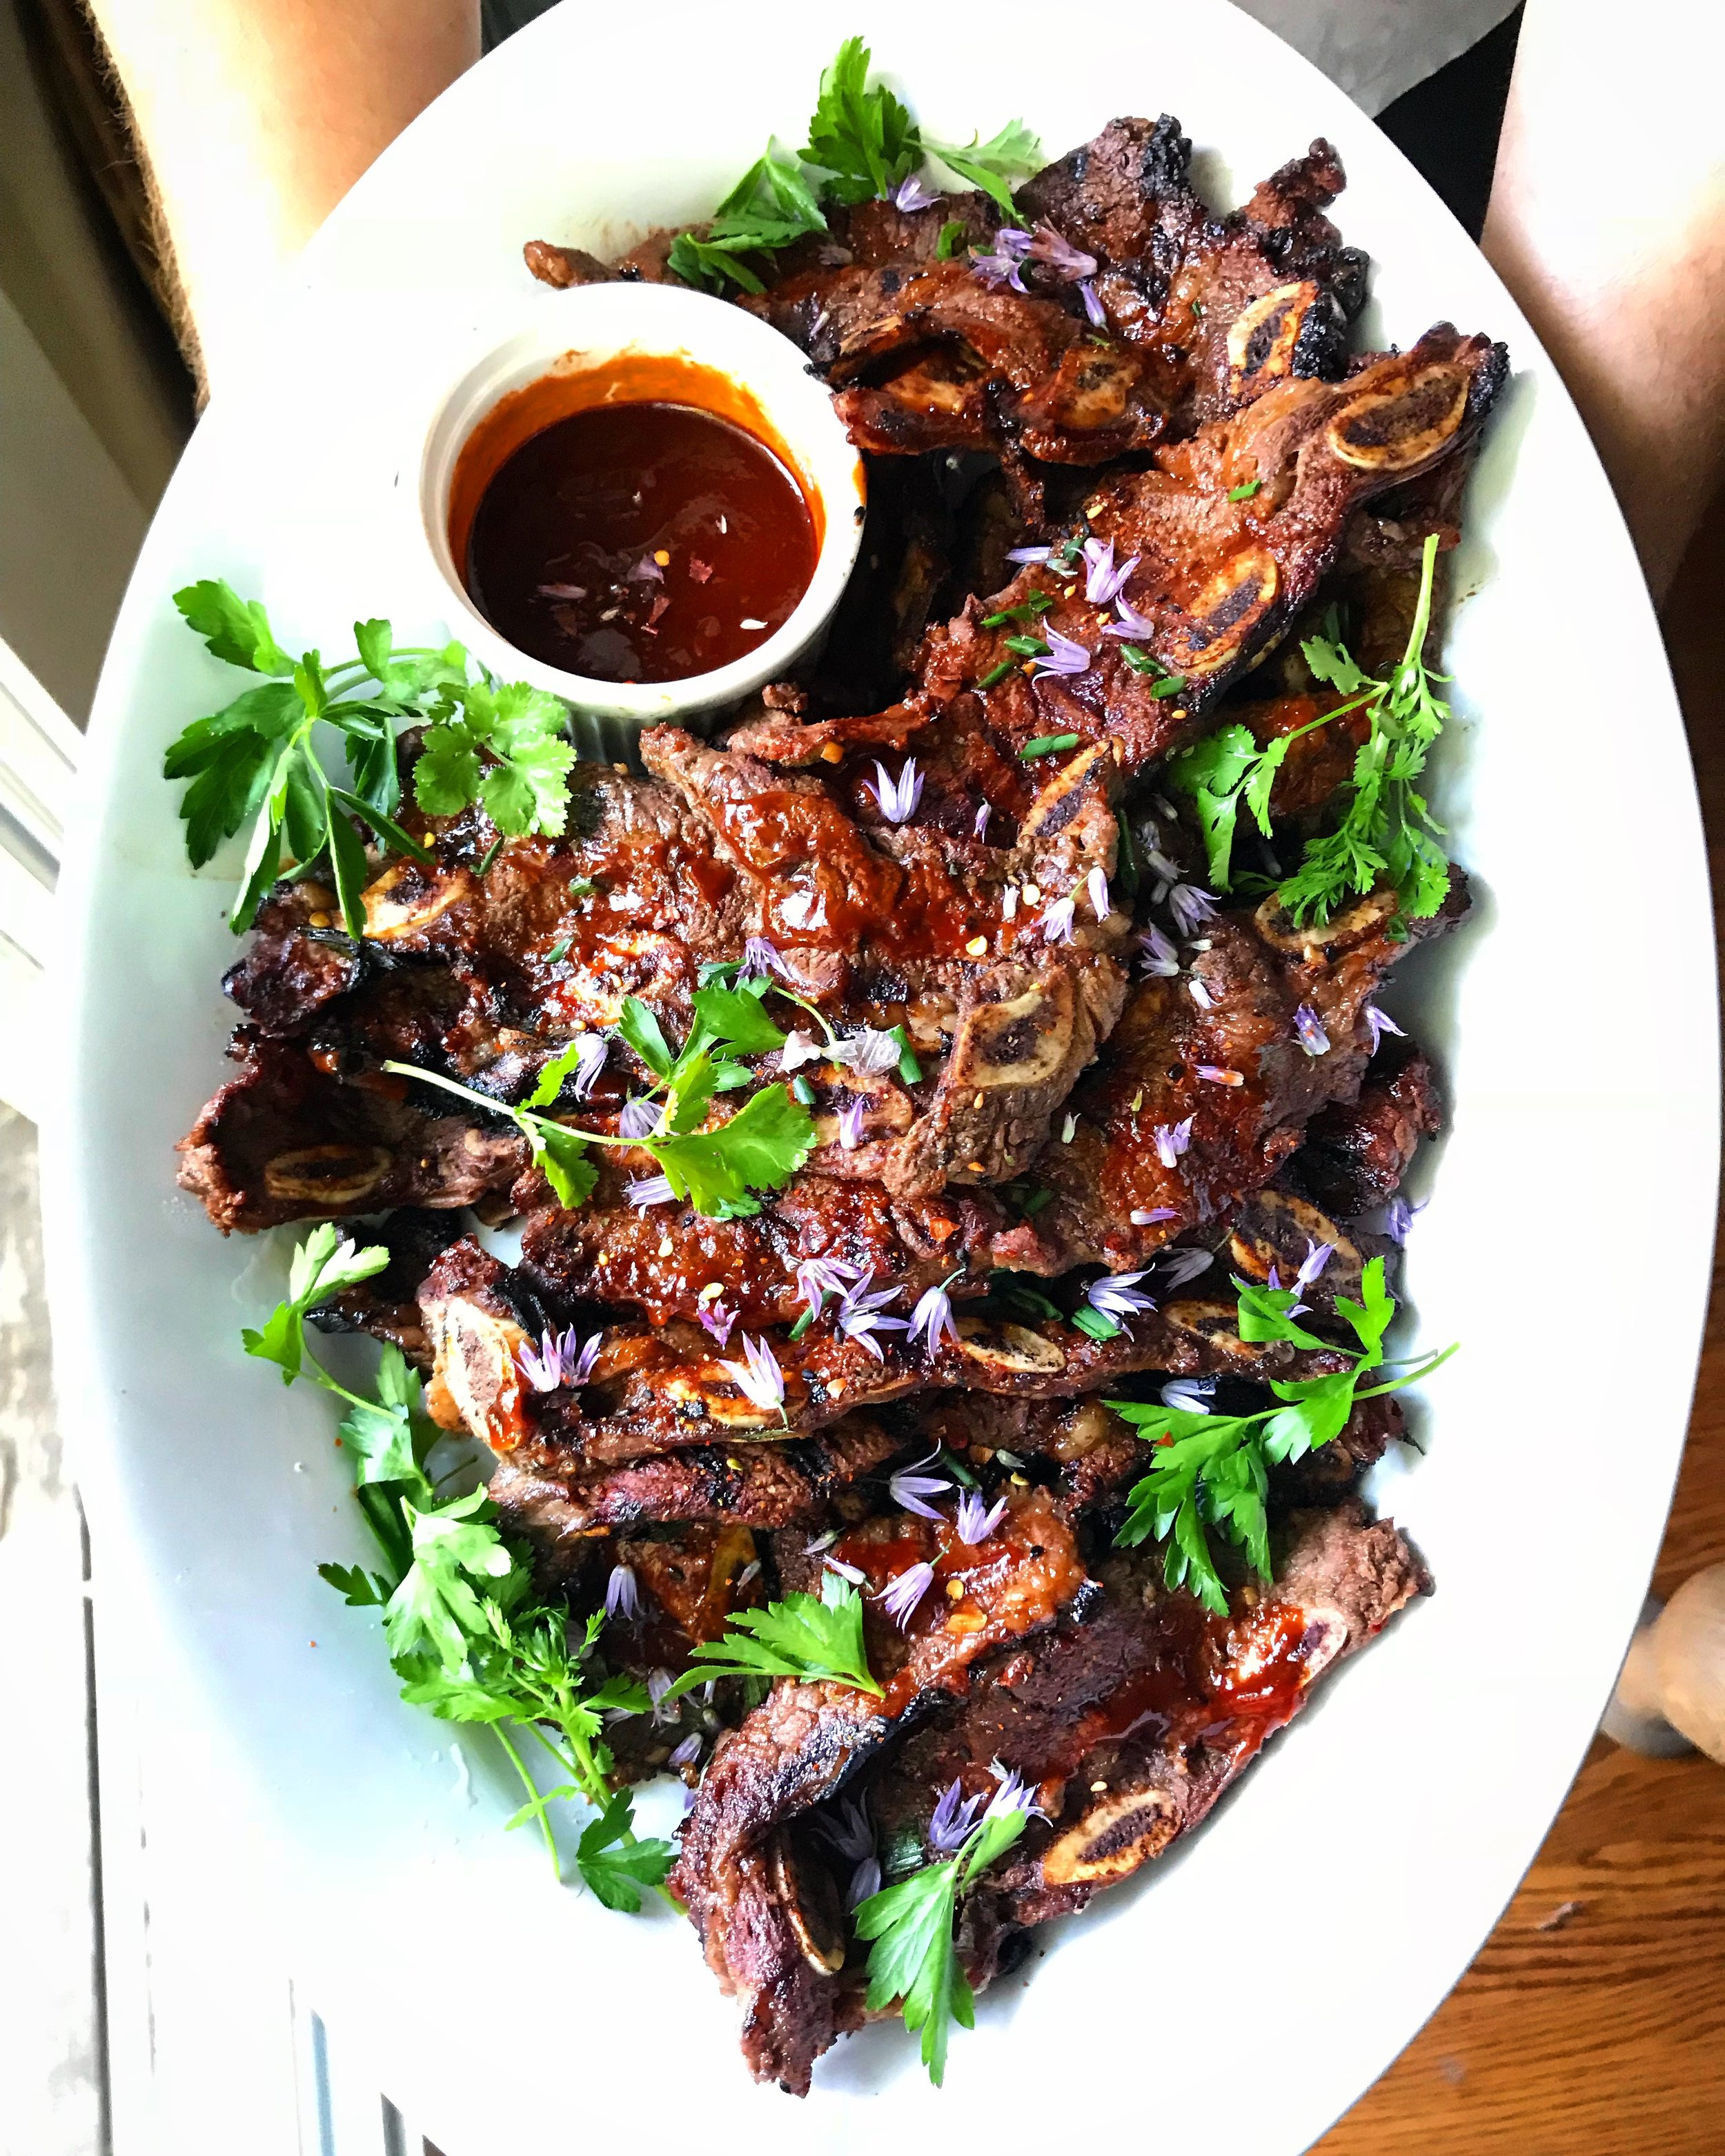 HERE IS WHAT YOU NEED: - 5 pounds Korean style short ribsFor the marinade:3/4 cup soy sauce (low sodium can be used)1/4 cup brown sugar1/4 cup rice wine (mirin)1/4 cup water2 tablespoons sesame oil3 large garlic cloves, minced2 tablespoons fresh ginger, minced1 tablespoon hoisin sauce1 teaspoon red pepper flakes (or to taste)2 green onions, sliced thinly2 tablespoons sesame seedsFor the asian style barbecue sauce:1/4 cup hoisin saice2 tablespoons rice vinegar1/4 cup sweet hot pepper sauce1 tablespoon sesame oil1/4 cup water